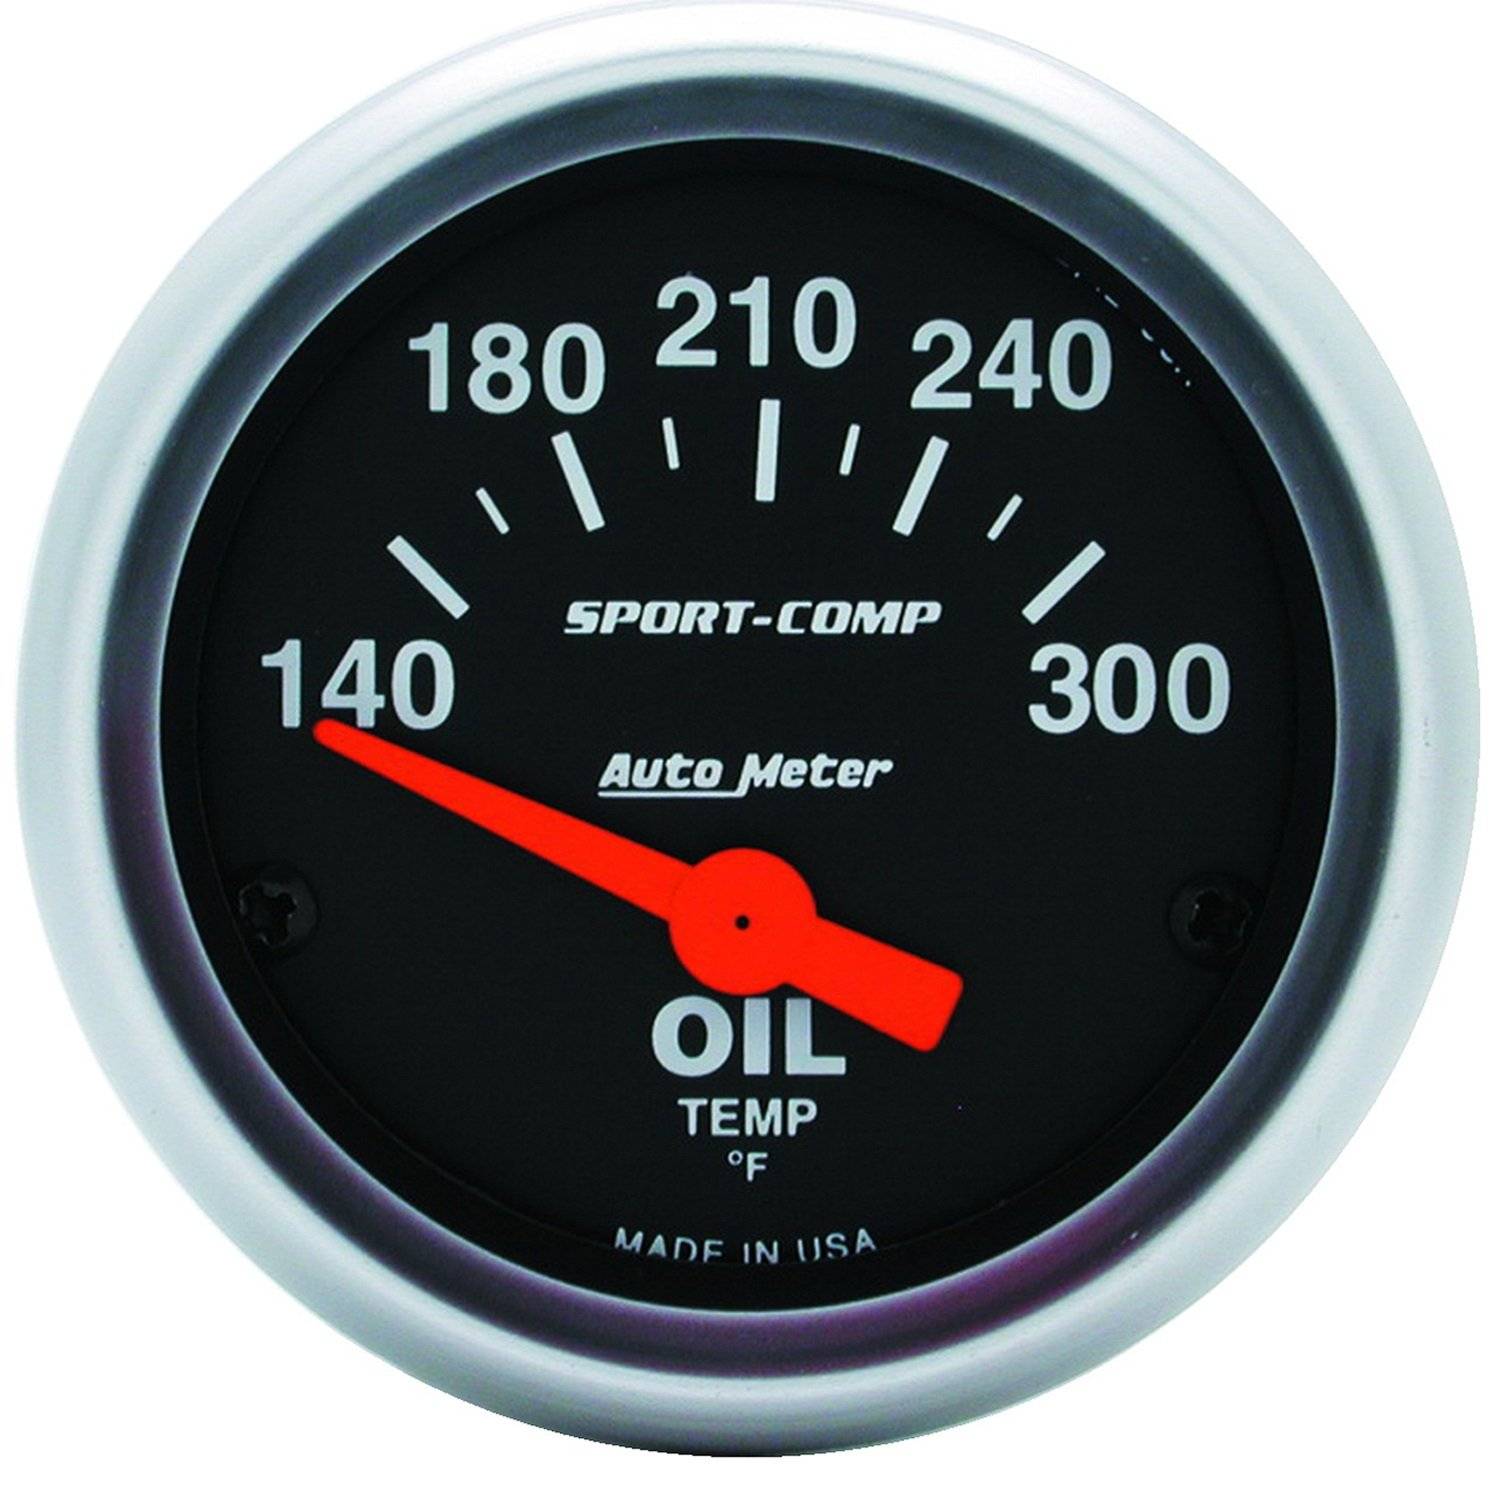 Auto Meter 3348 Sport-Comp Electric Oil Temperature Gauge by Auto Meter